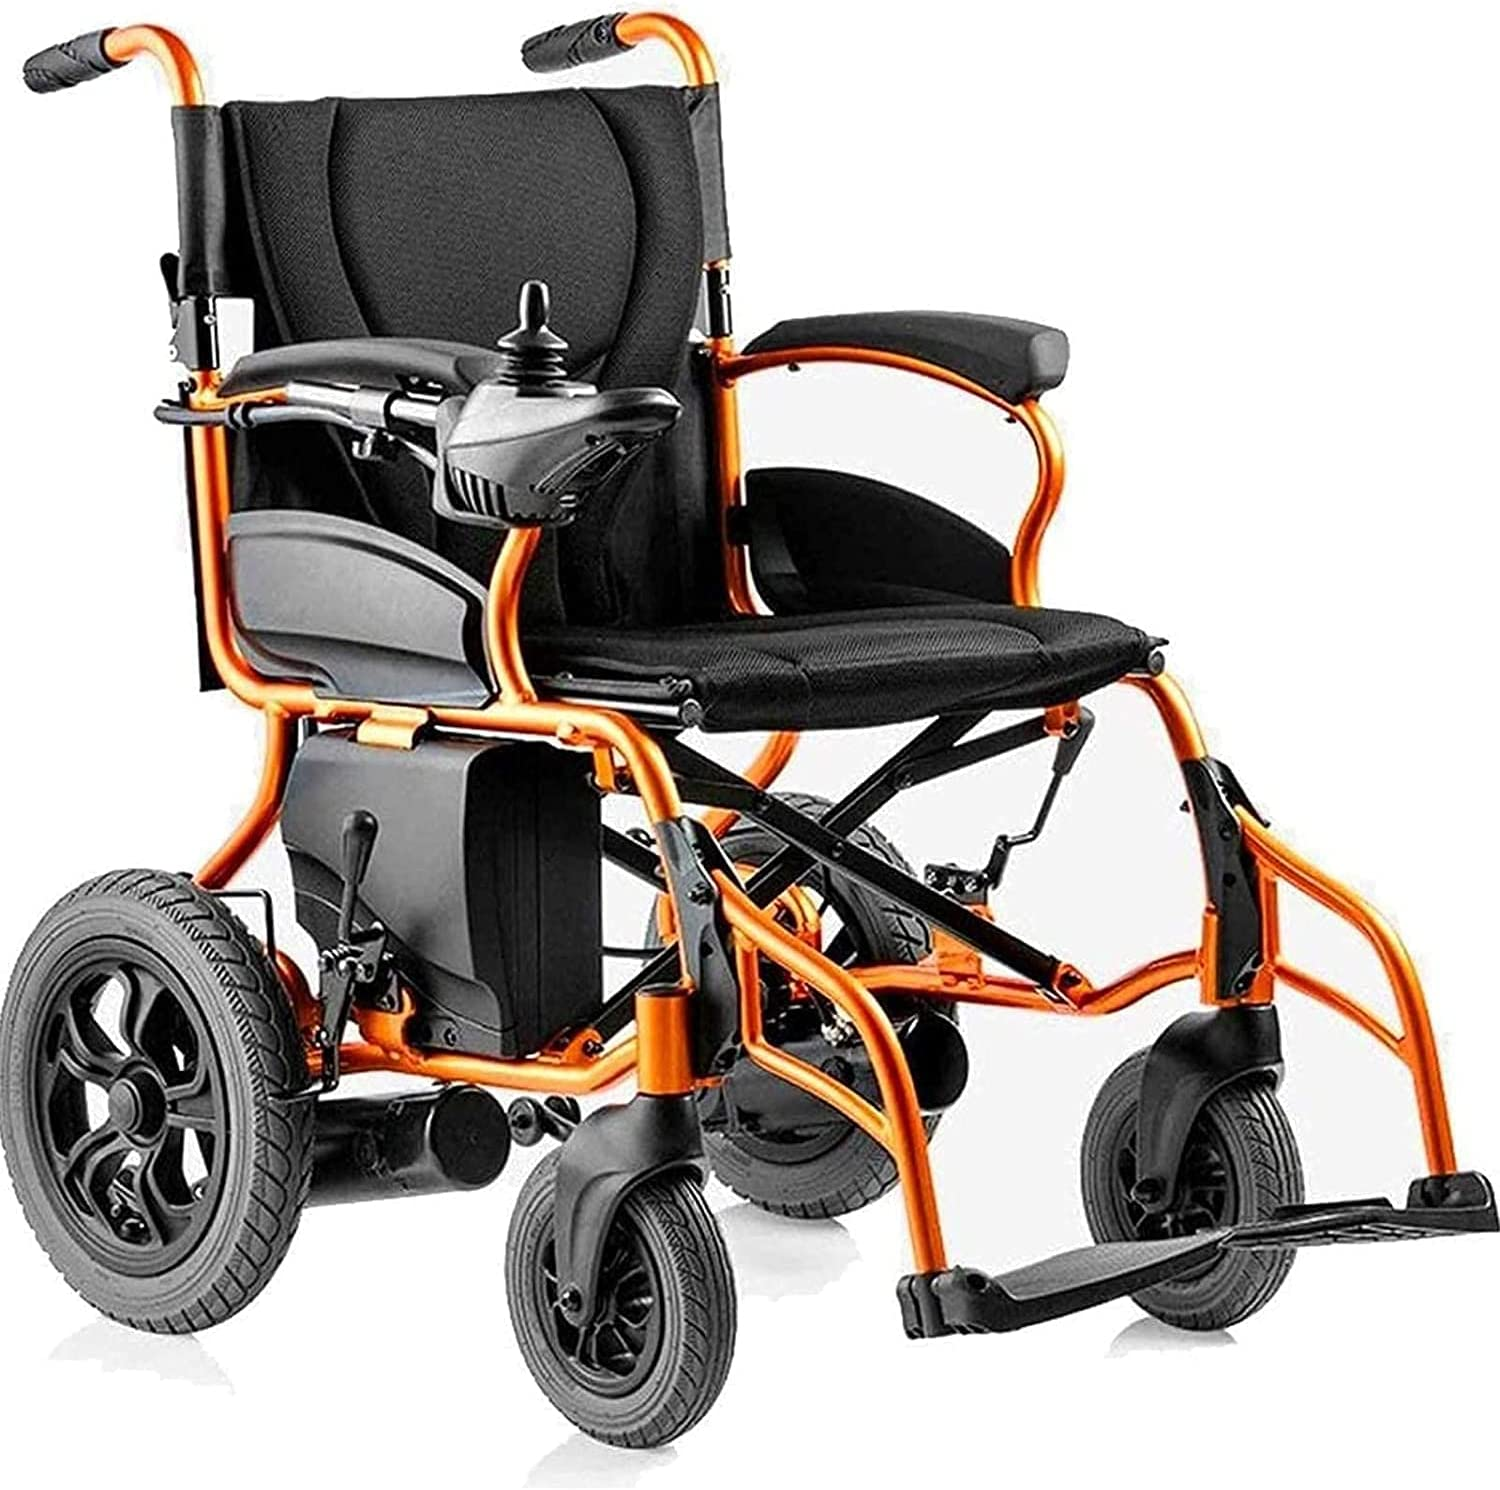 depot Aluminum A surprise price is realized Alloy Electric Wheelchair Battery Lithium Folding Light